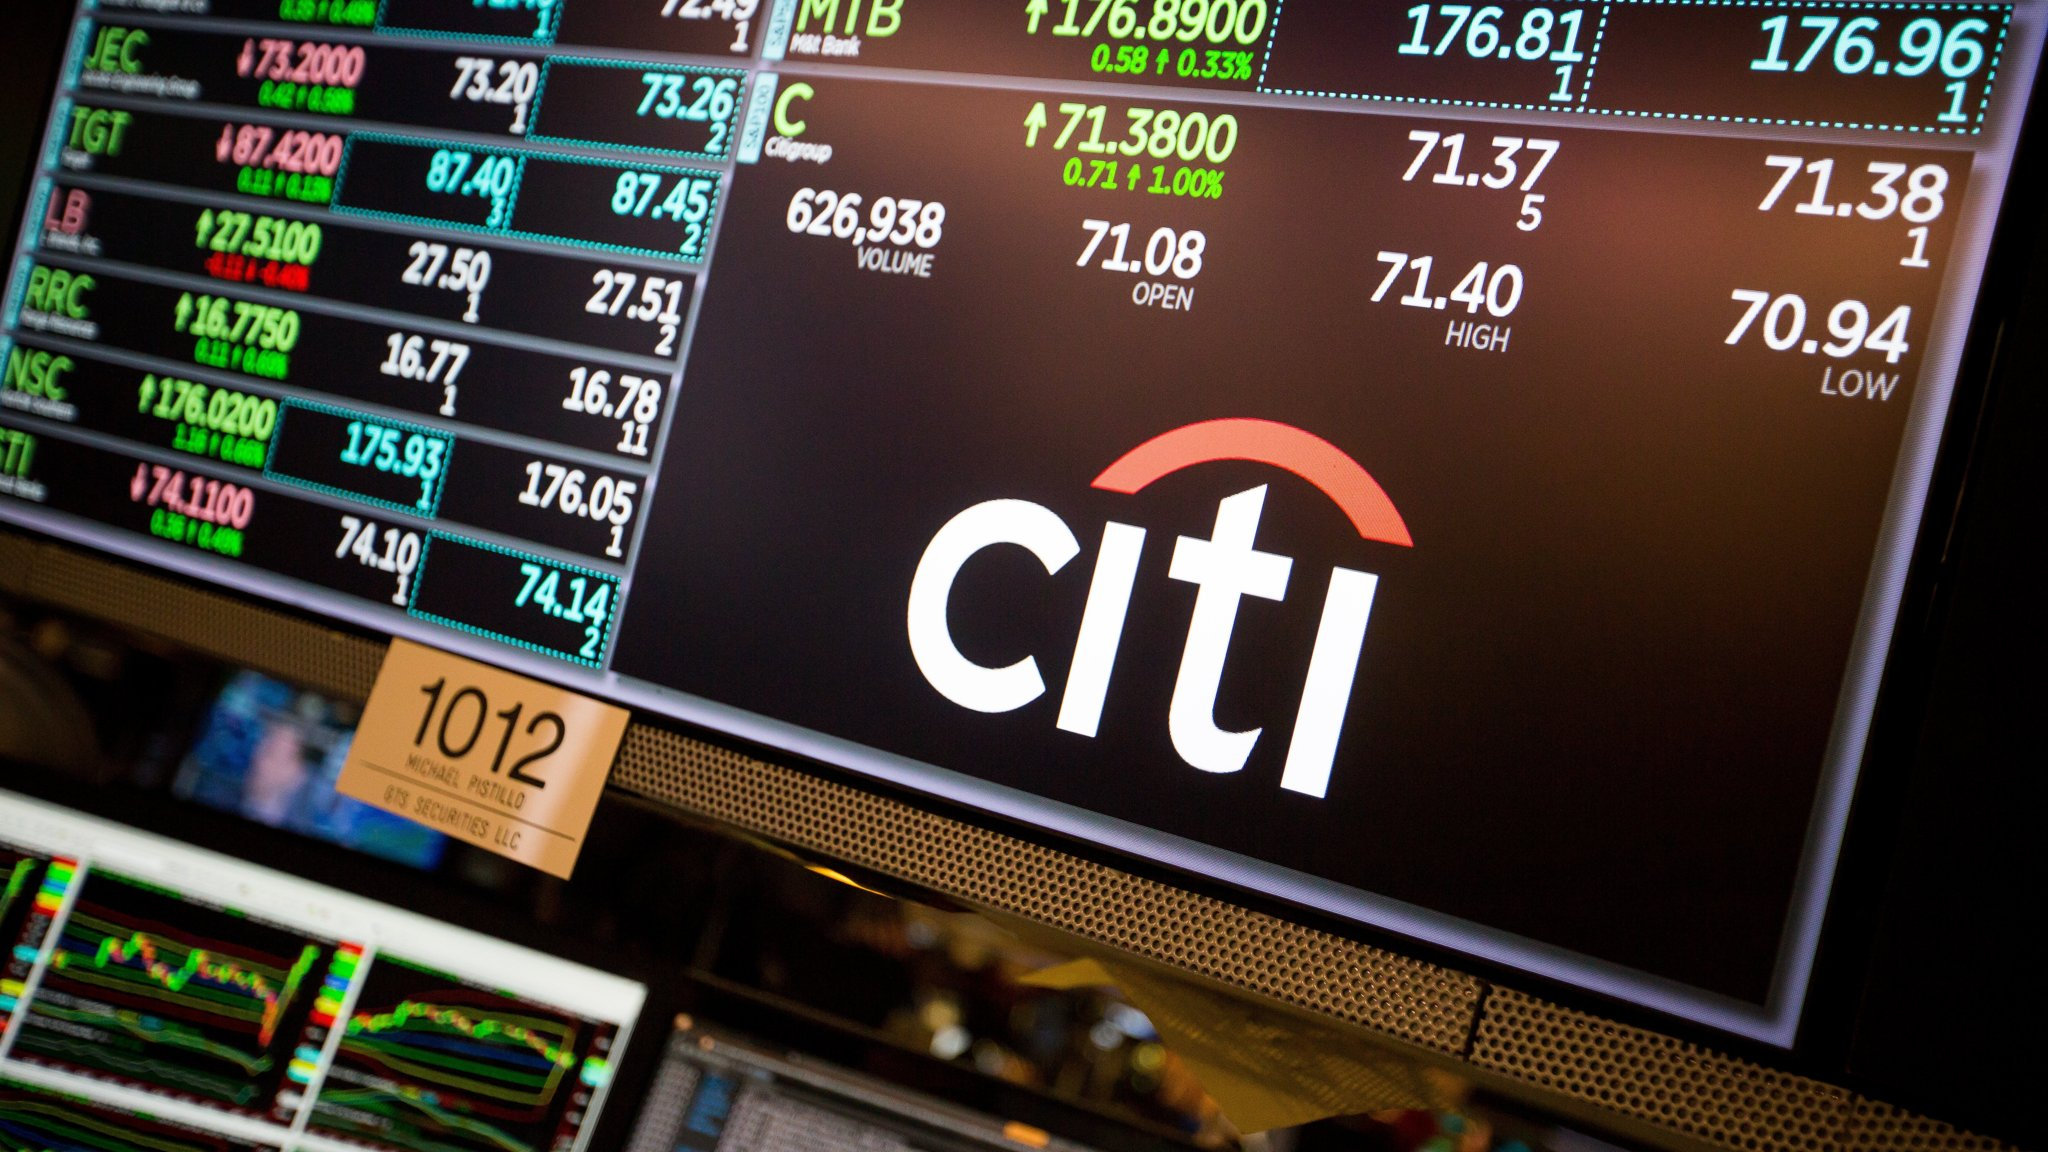 Securities Trader Cover Letter Citigroup Fires Eight Hong Kong Traders Financial Times